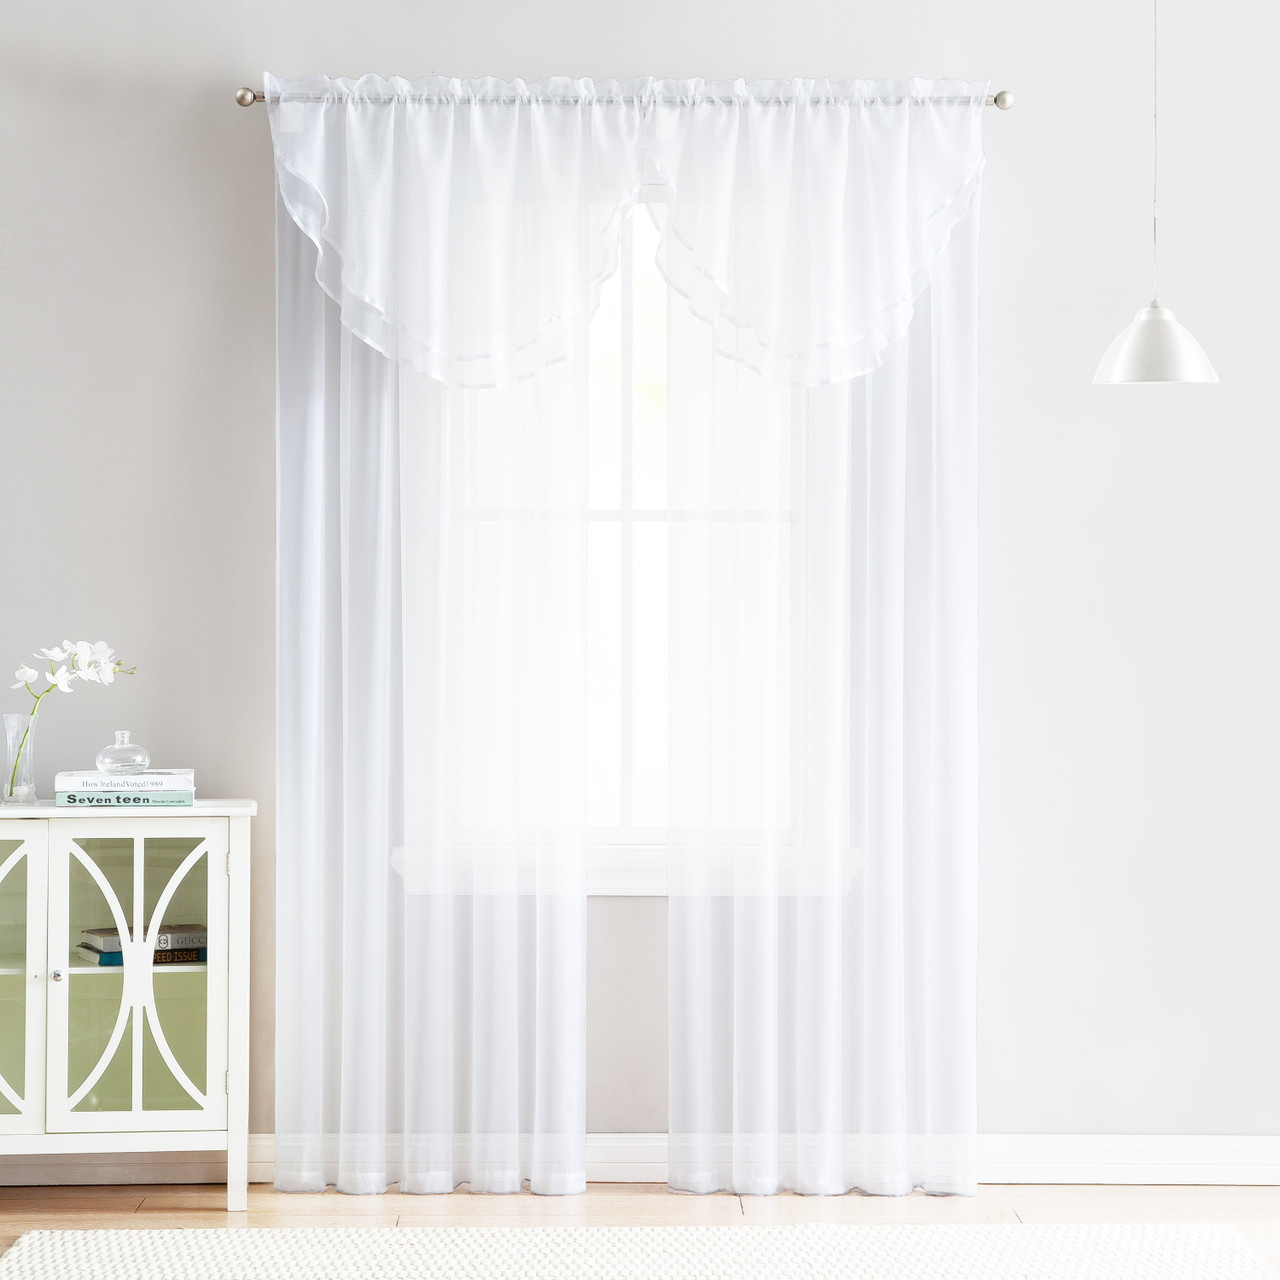 4 Piece Sheer Window Curtain Set For Living Room Dining Room Bay Windows 2 Voile Valance Curtains And 2 Panels 84 In Long White